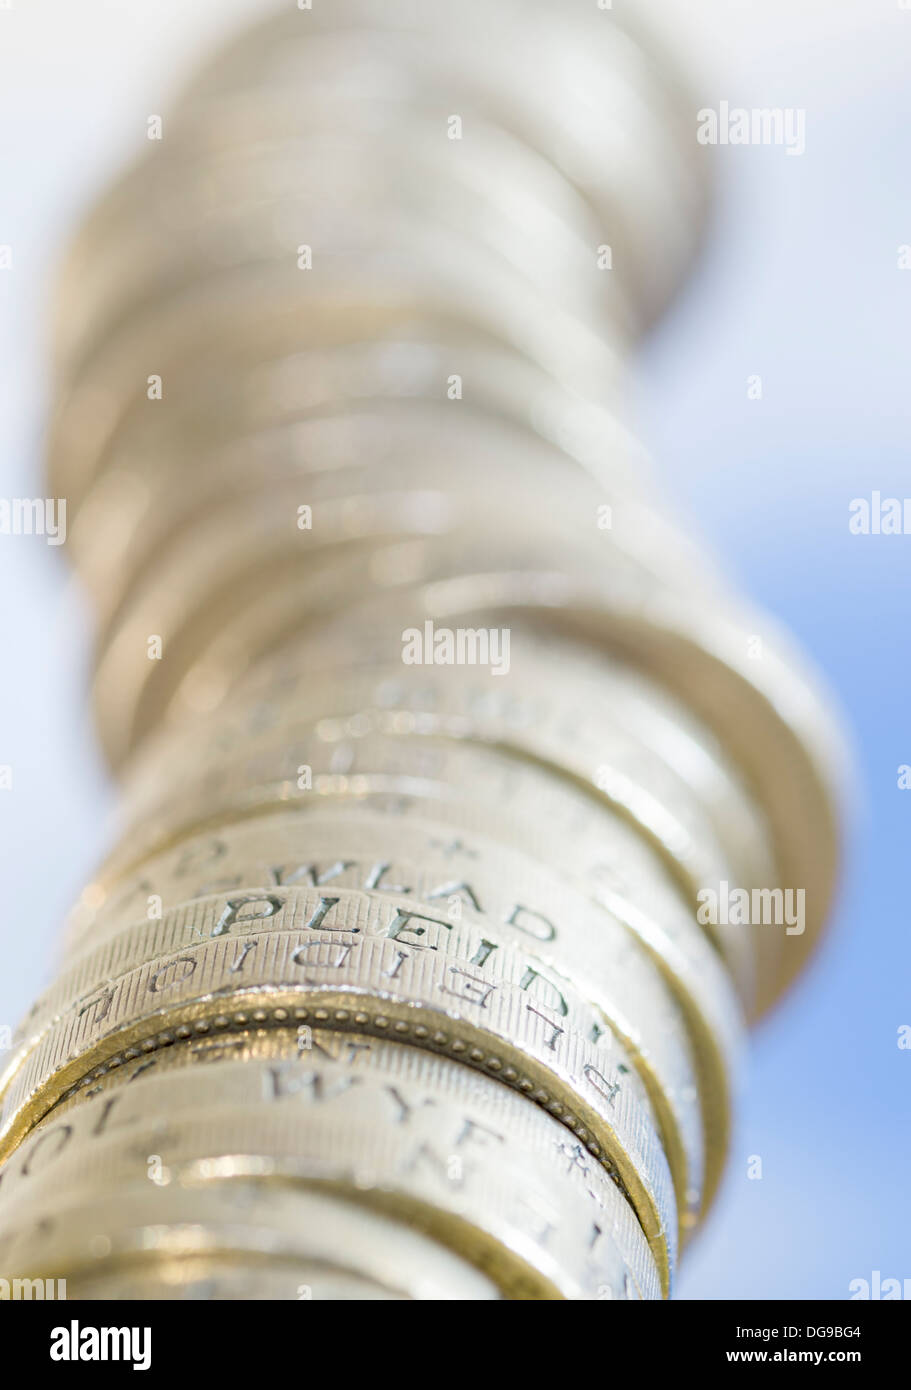 A pile of pound coins disappearing into the sky - Stock Image